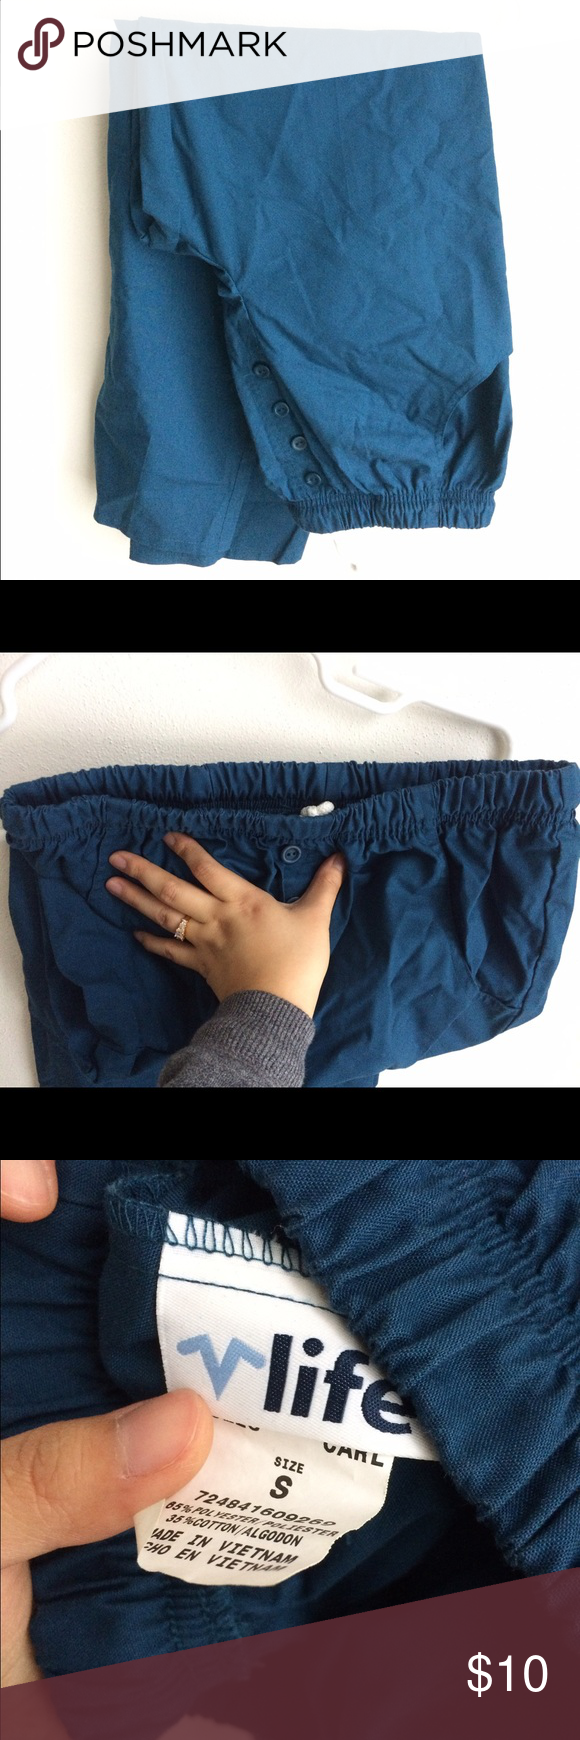 Caribbean blue scrub pant. Very comfy scrub pant. Stretchy waist band with extra string to pull. Buttons in front. Hip pockets. Petite. life uniform Pants